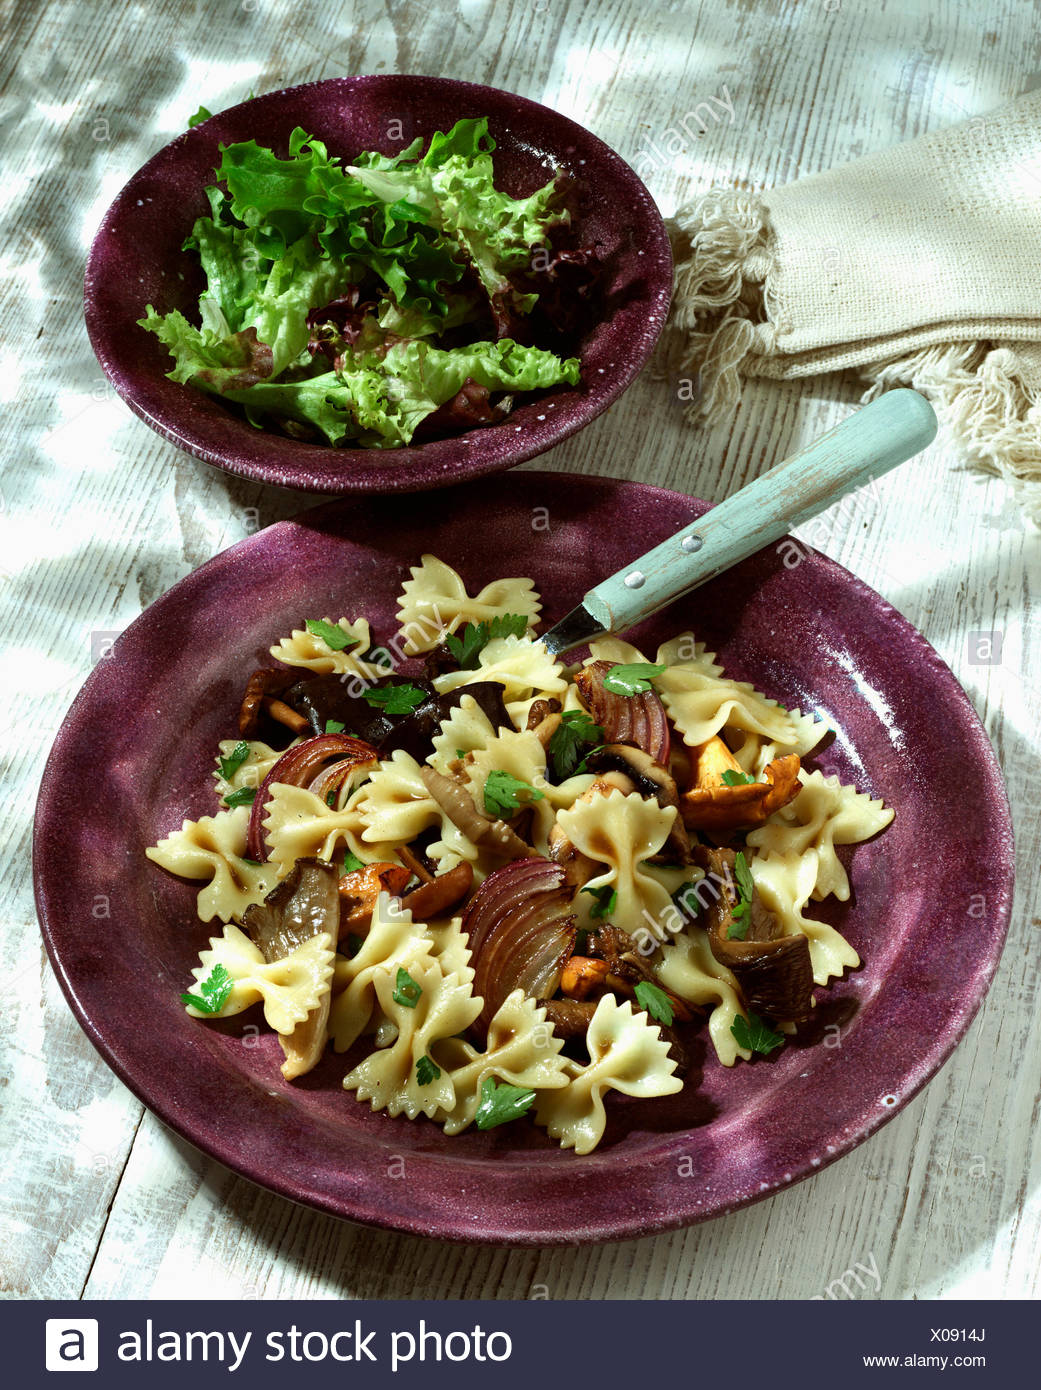 Plate Of Homemade Farfalle With Mushrooms - Stock Image